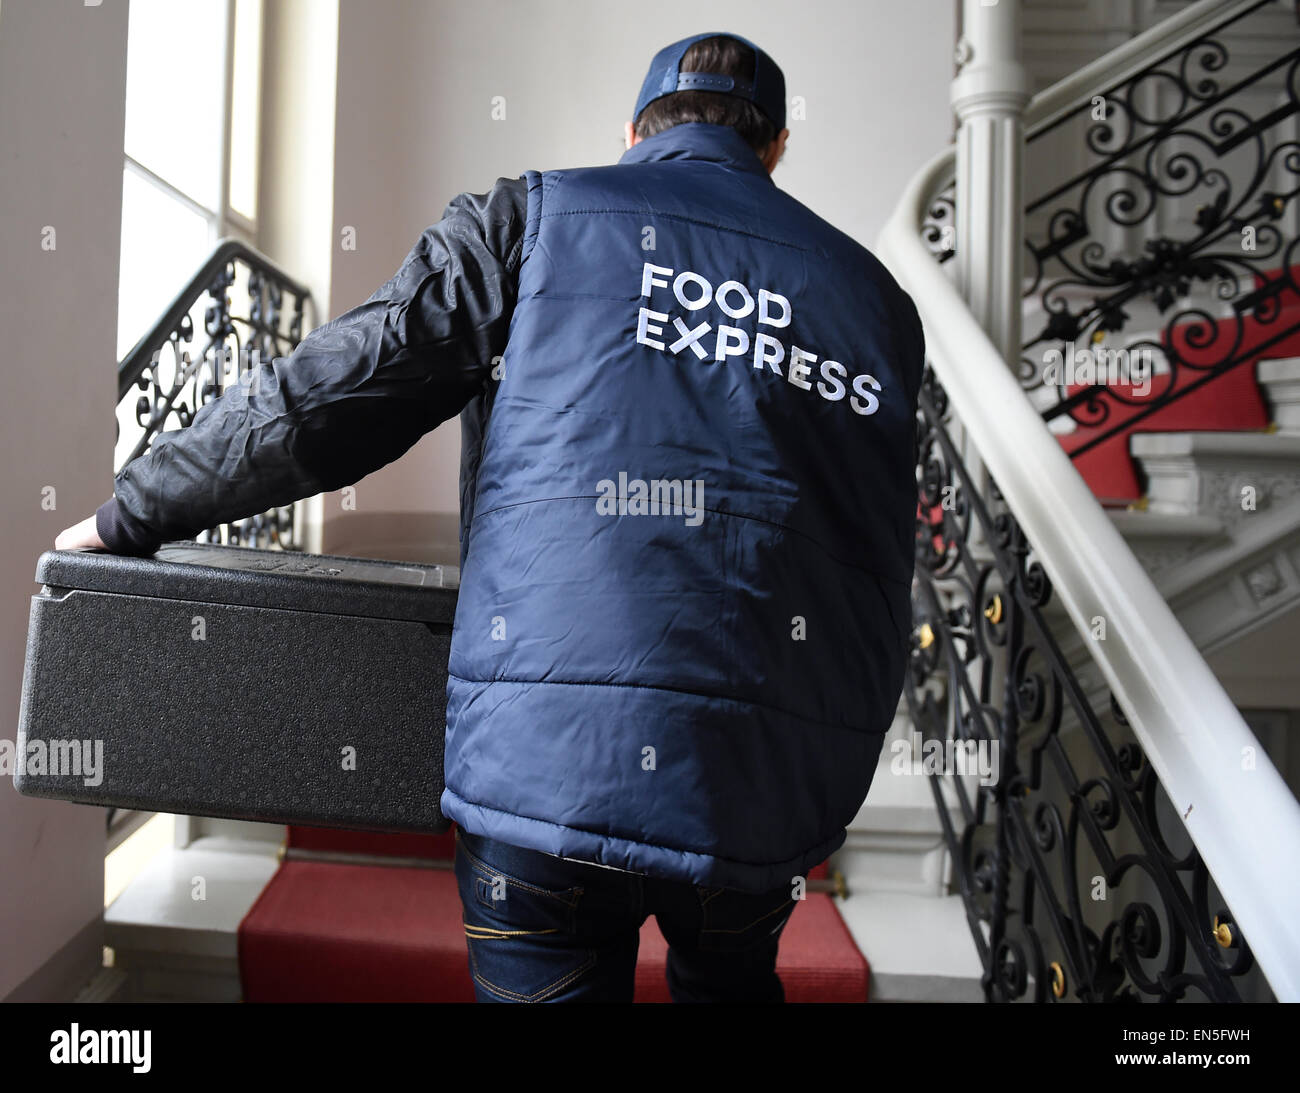 Berlin, Germany. 17th Apr, 2015. ILLUSTRATION - A driver of the independent delivery service 'Food express' - Stock Image